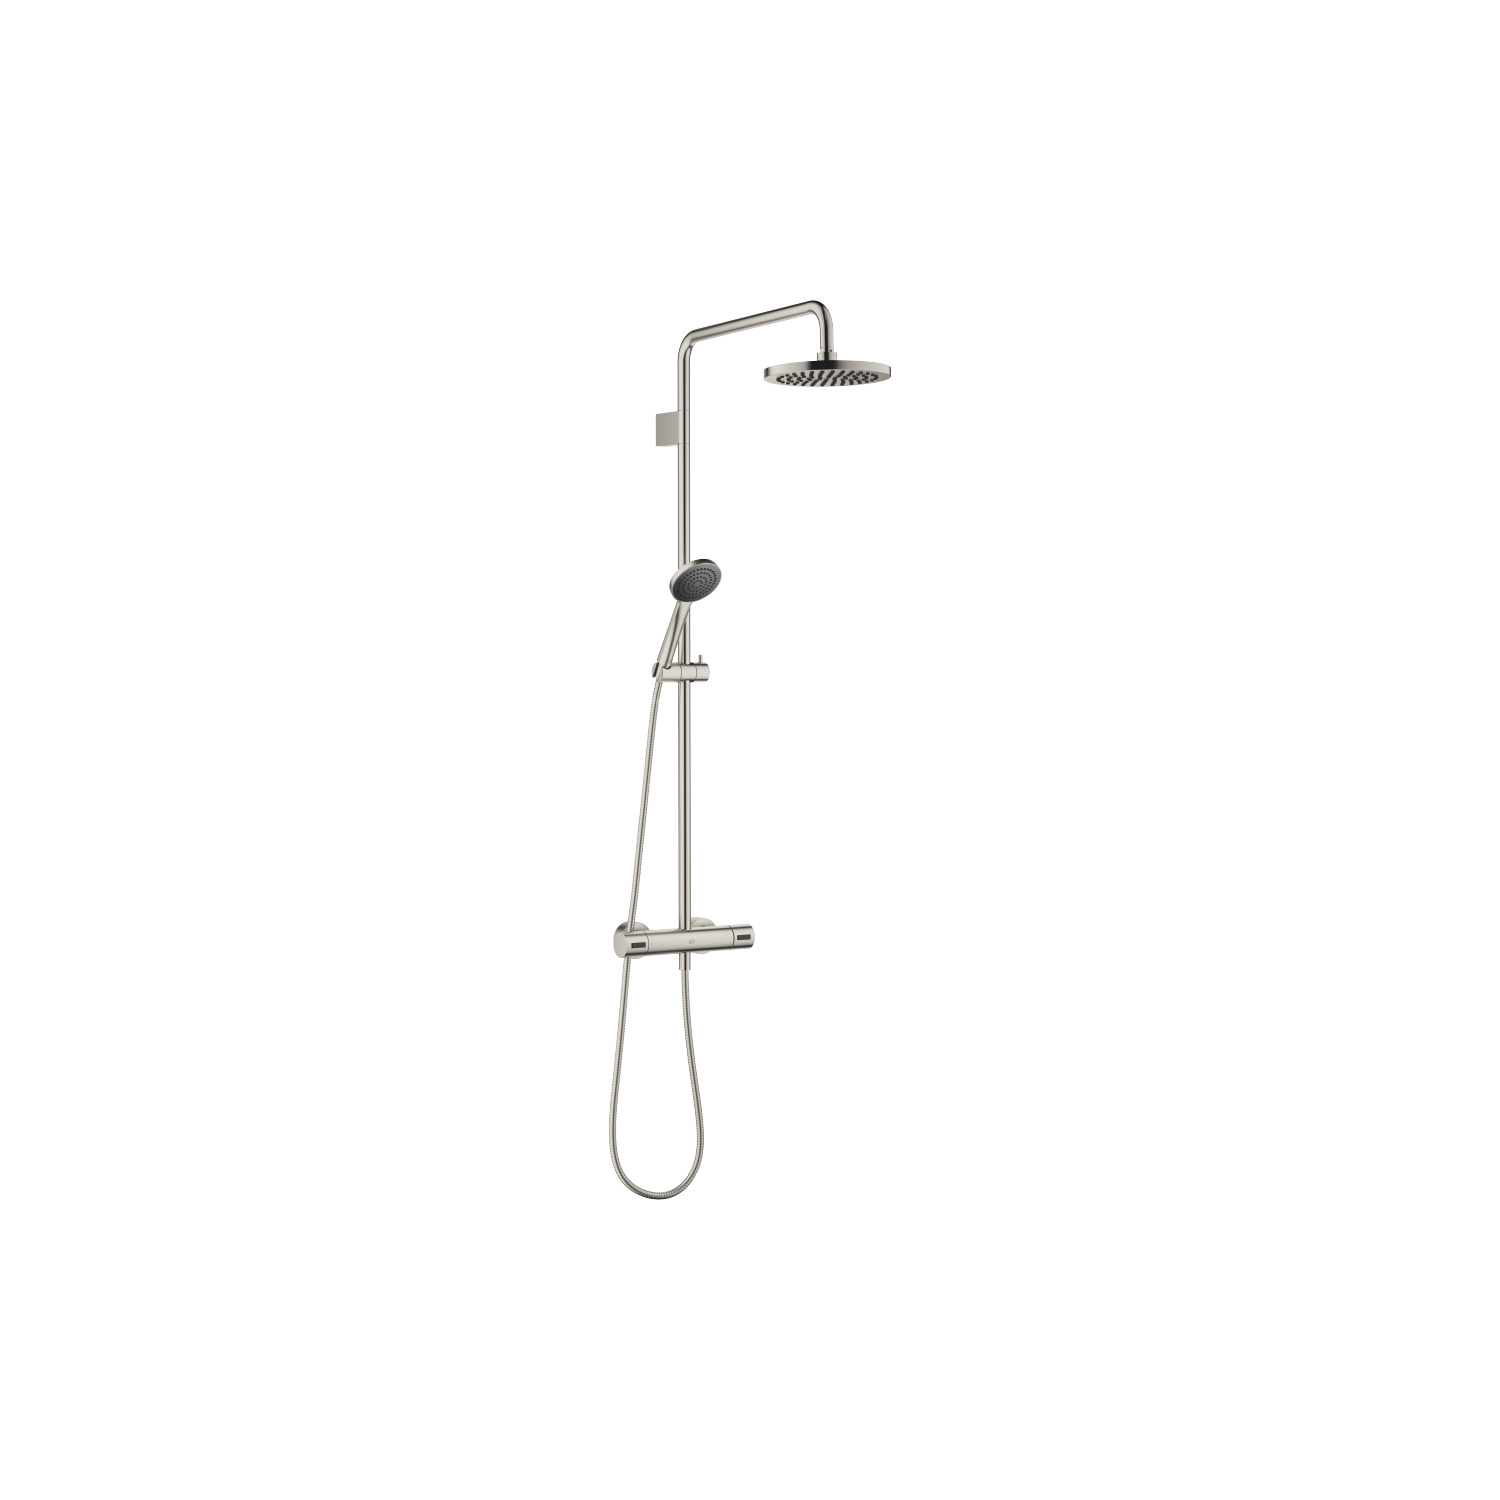 Exposed shower set with shower thermostat - platinum matte